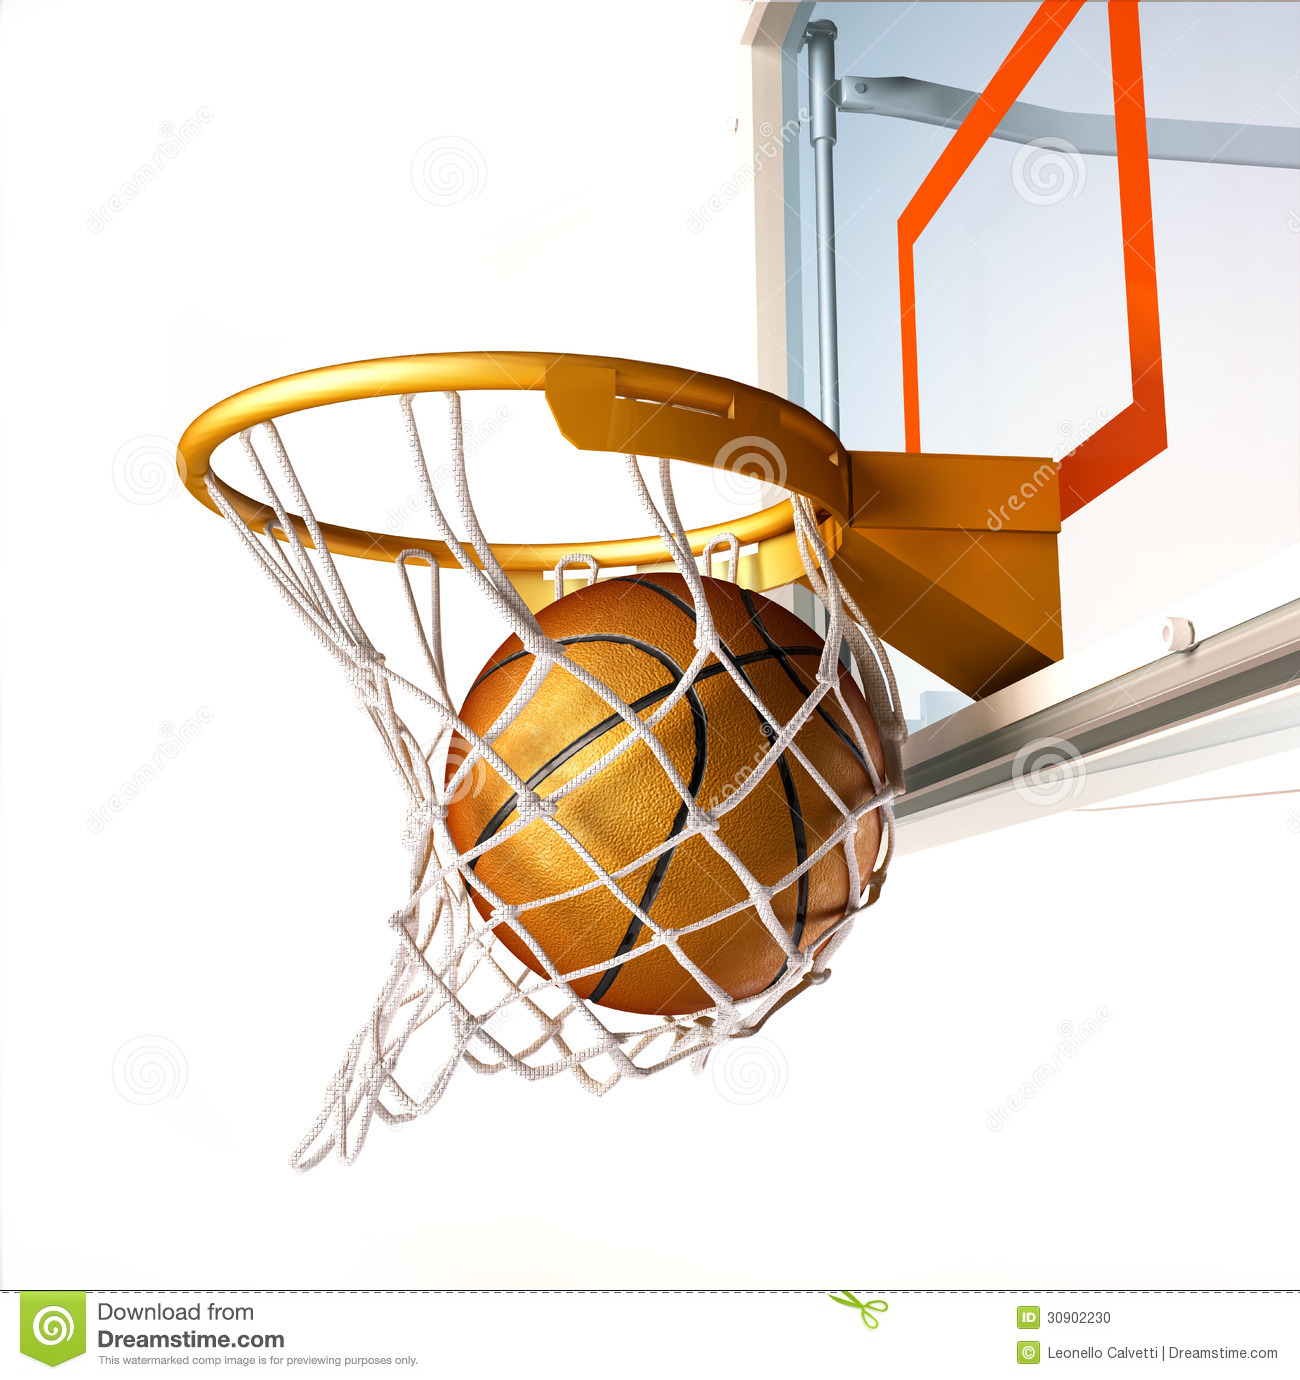 Basketball Centering The Basket Close Up View Stock Illustration